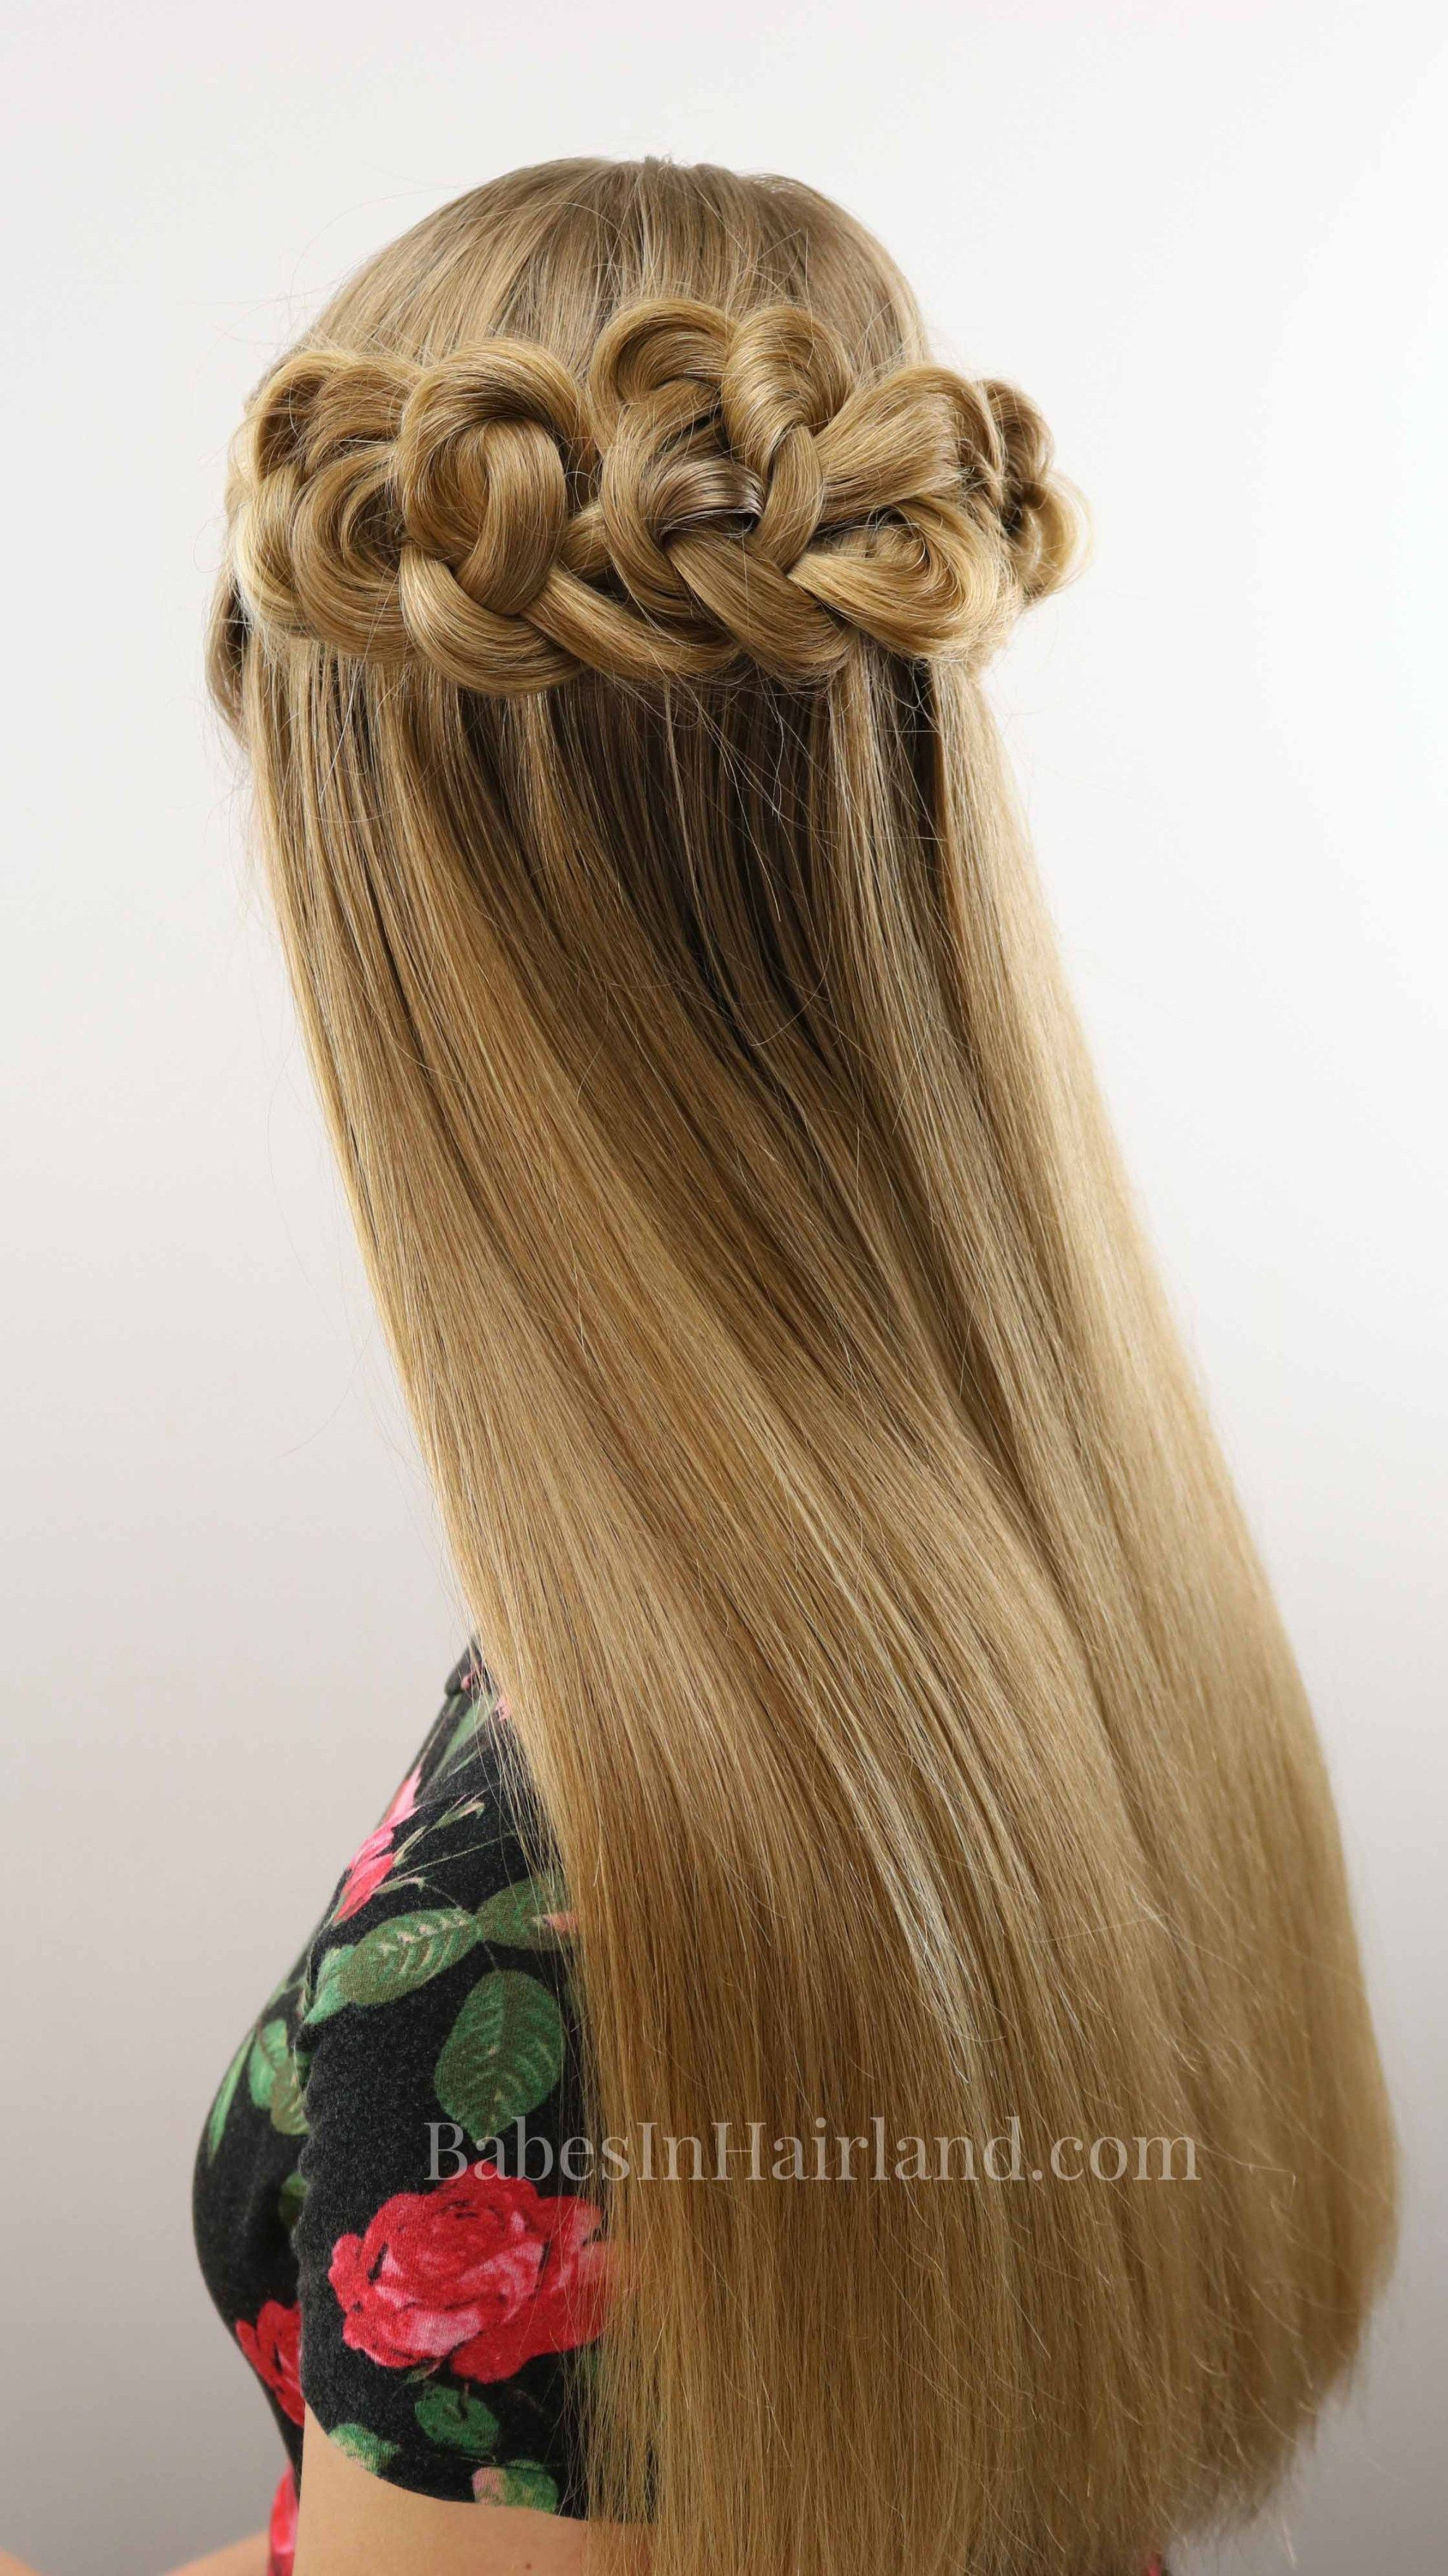 Need a beautiful prom hairstyle or have a special occasion coming up